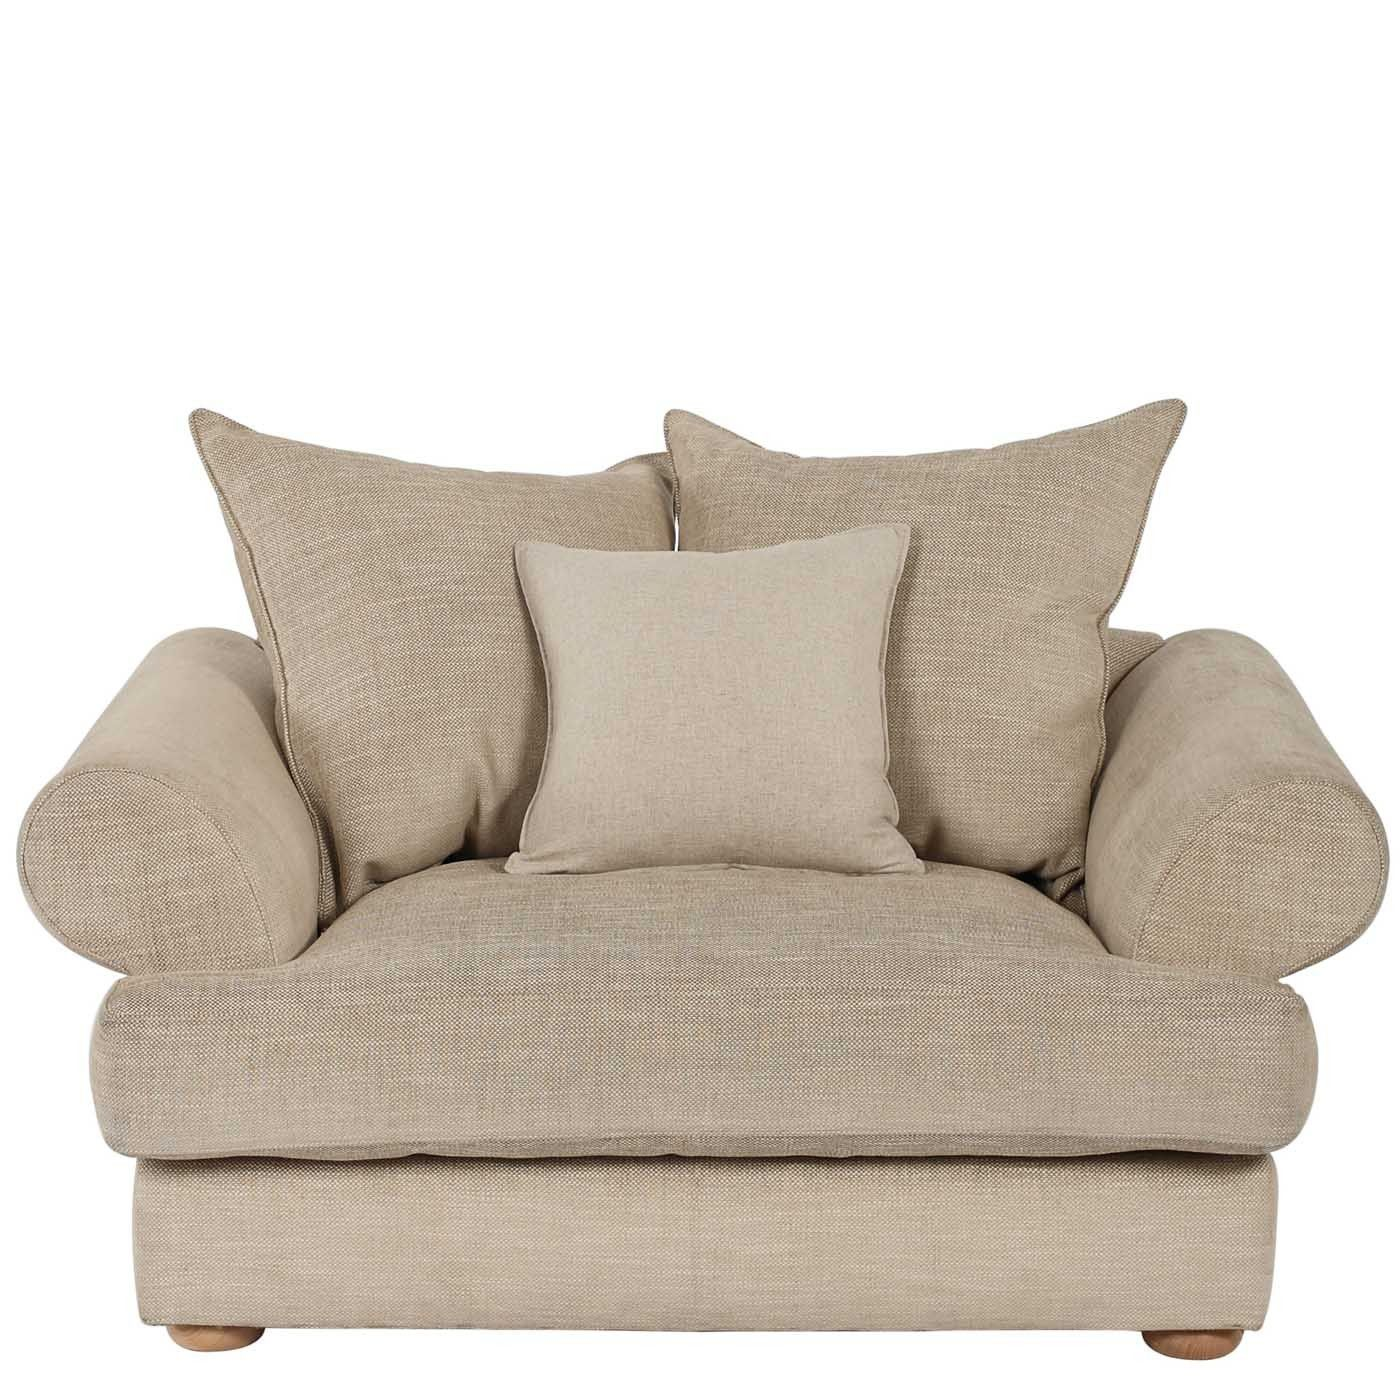 Lincoln chair and a half house furniture overstuffed - Overstuffed leather sofa living room ...